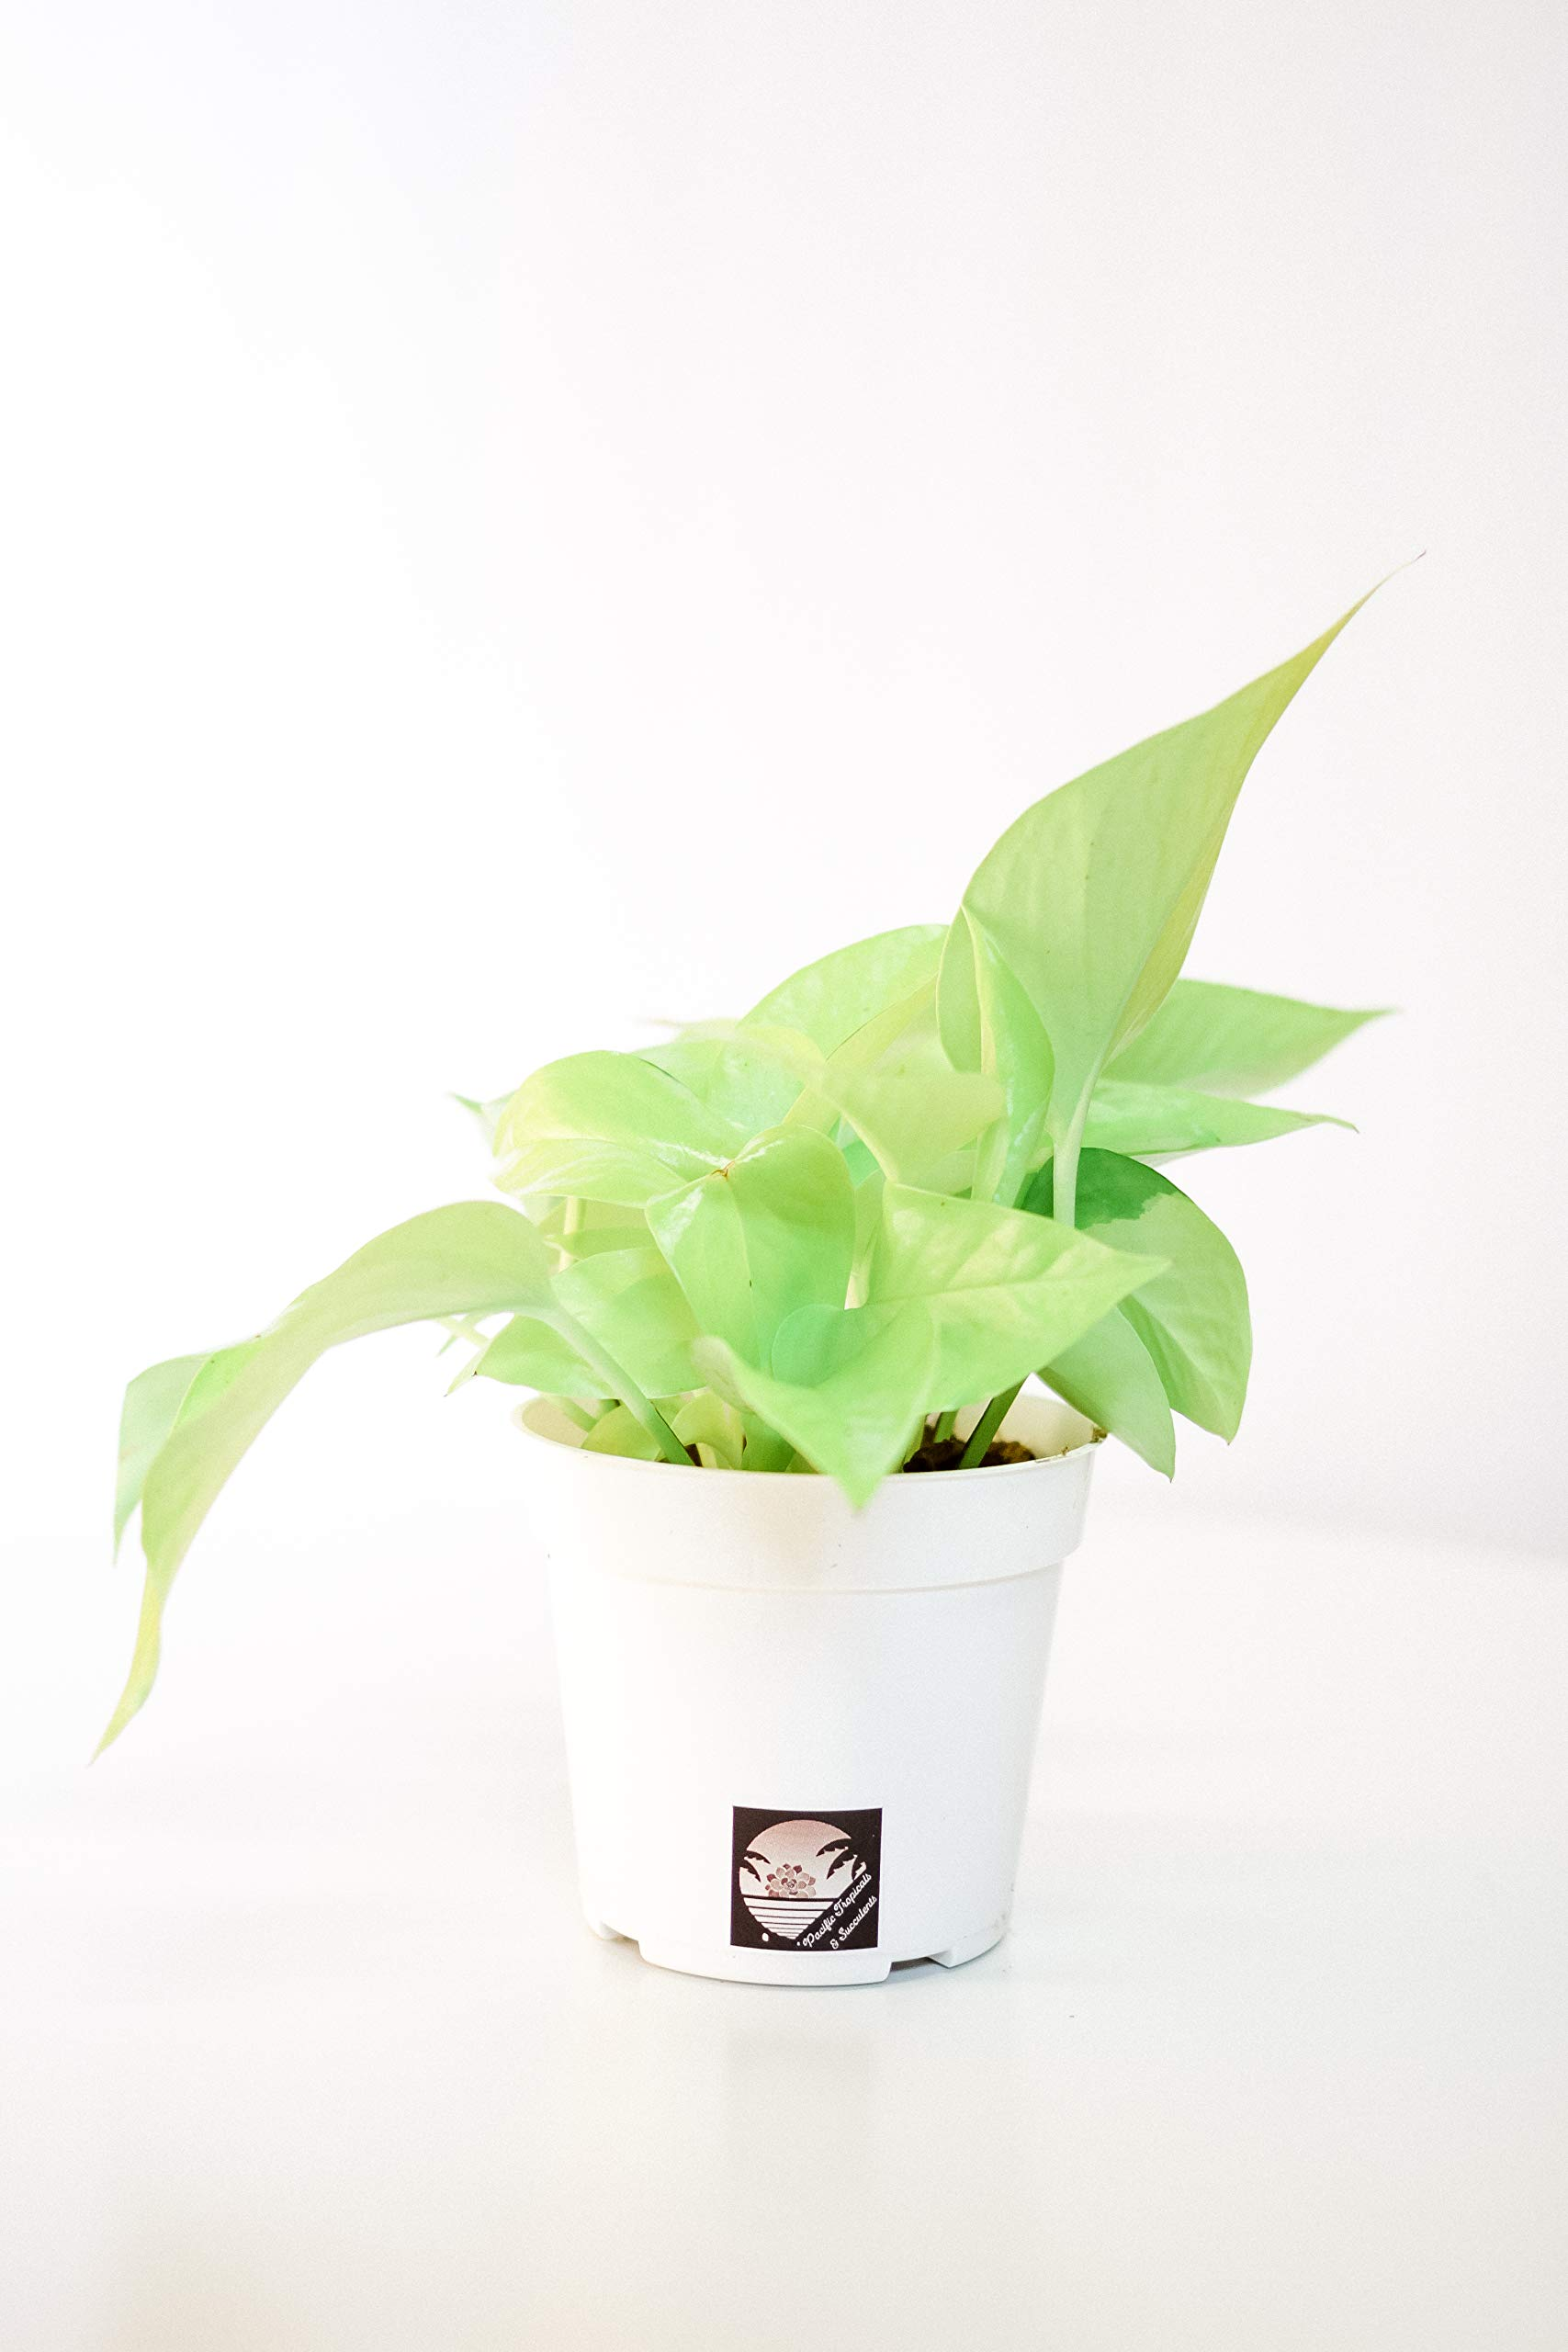 Pacific Tropicals &Succulents -Neon Pothos -Live Indoor Plant-Ships in 4 inch Grow Pot-Homegrown